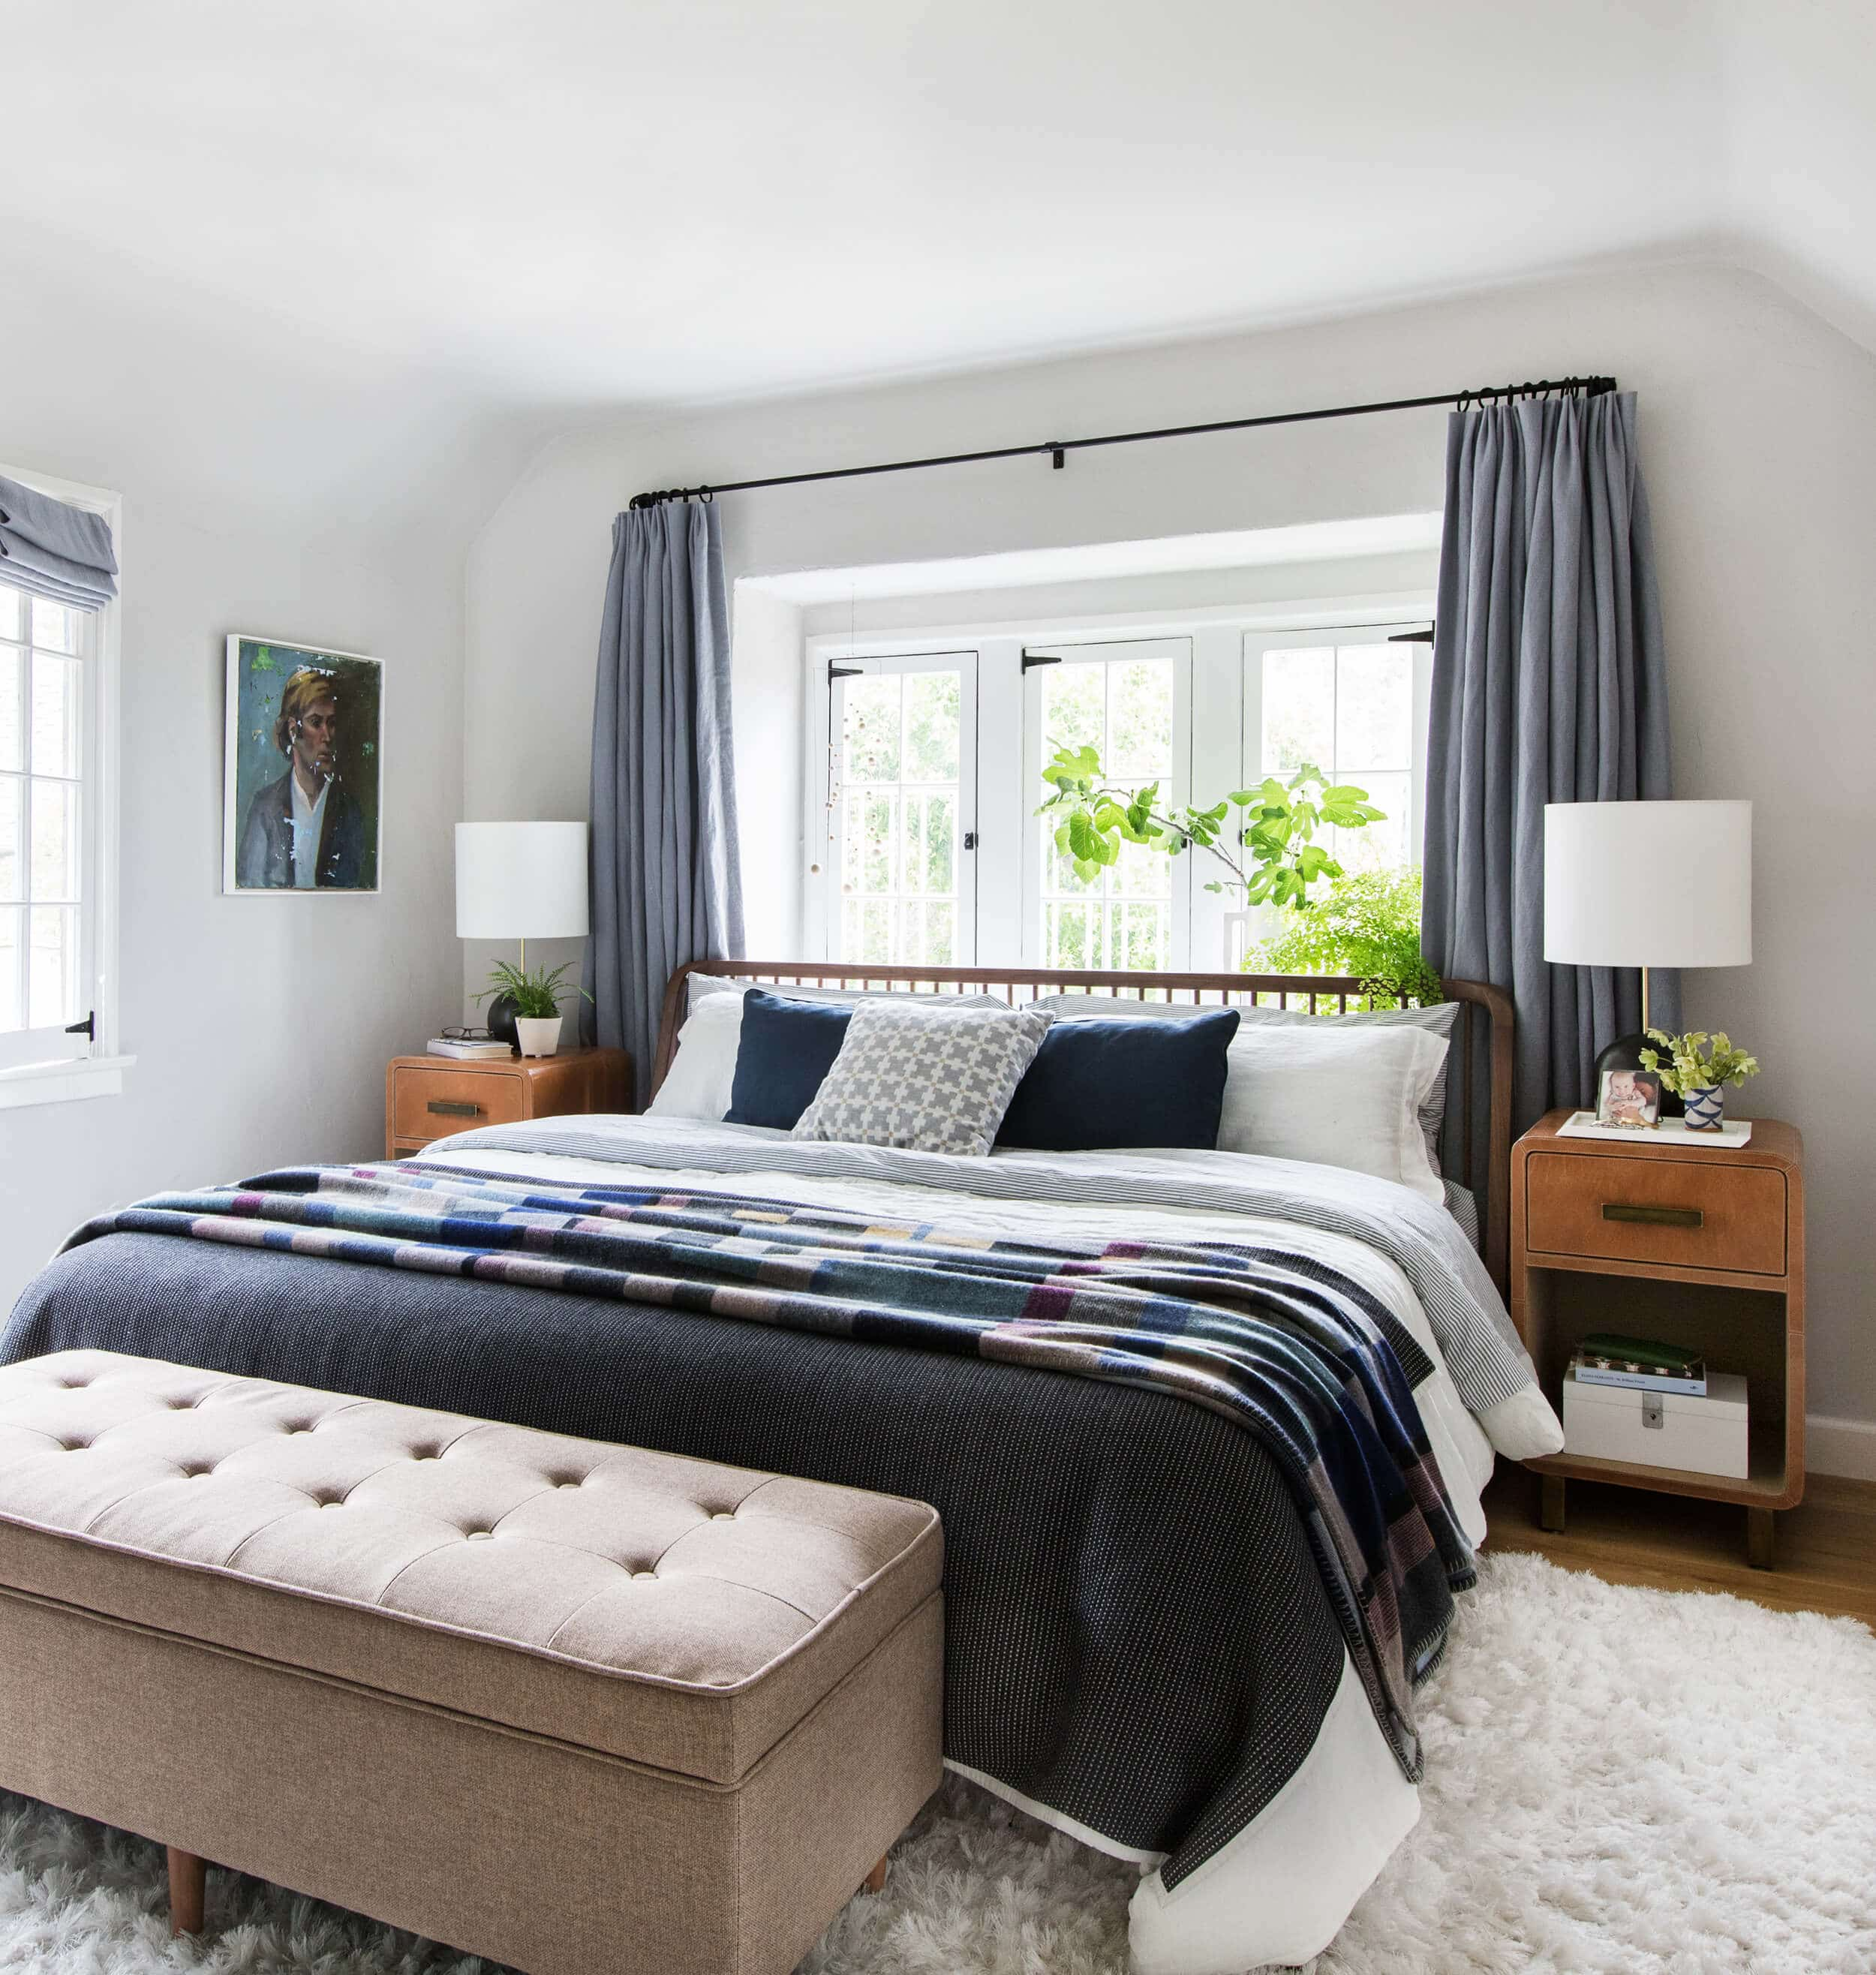 Are We Done With Gray We Explore A How Do You Pick The Right Gray Paint Tutorial Emily Henderson,Sage To Get Rid Of Negative Energy